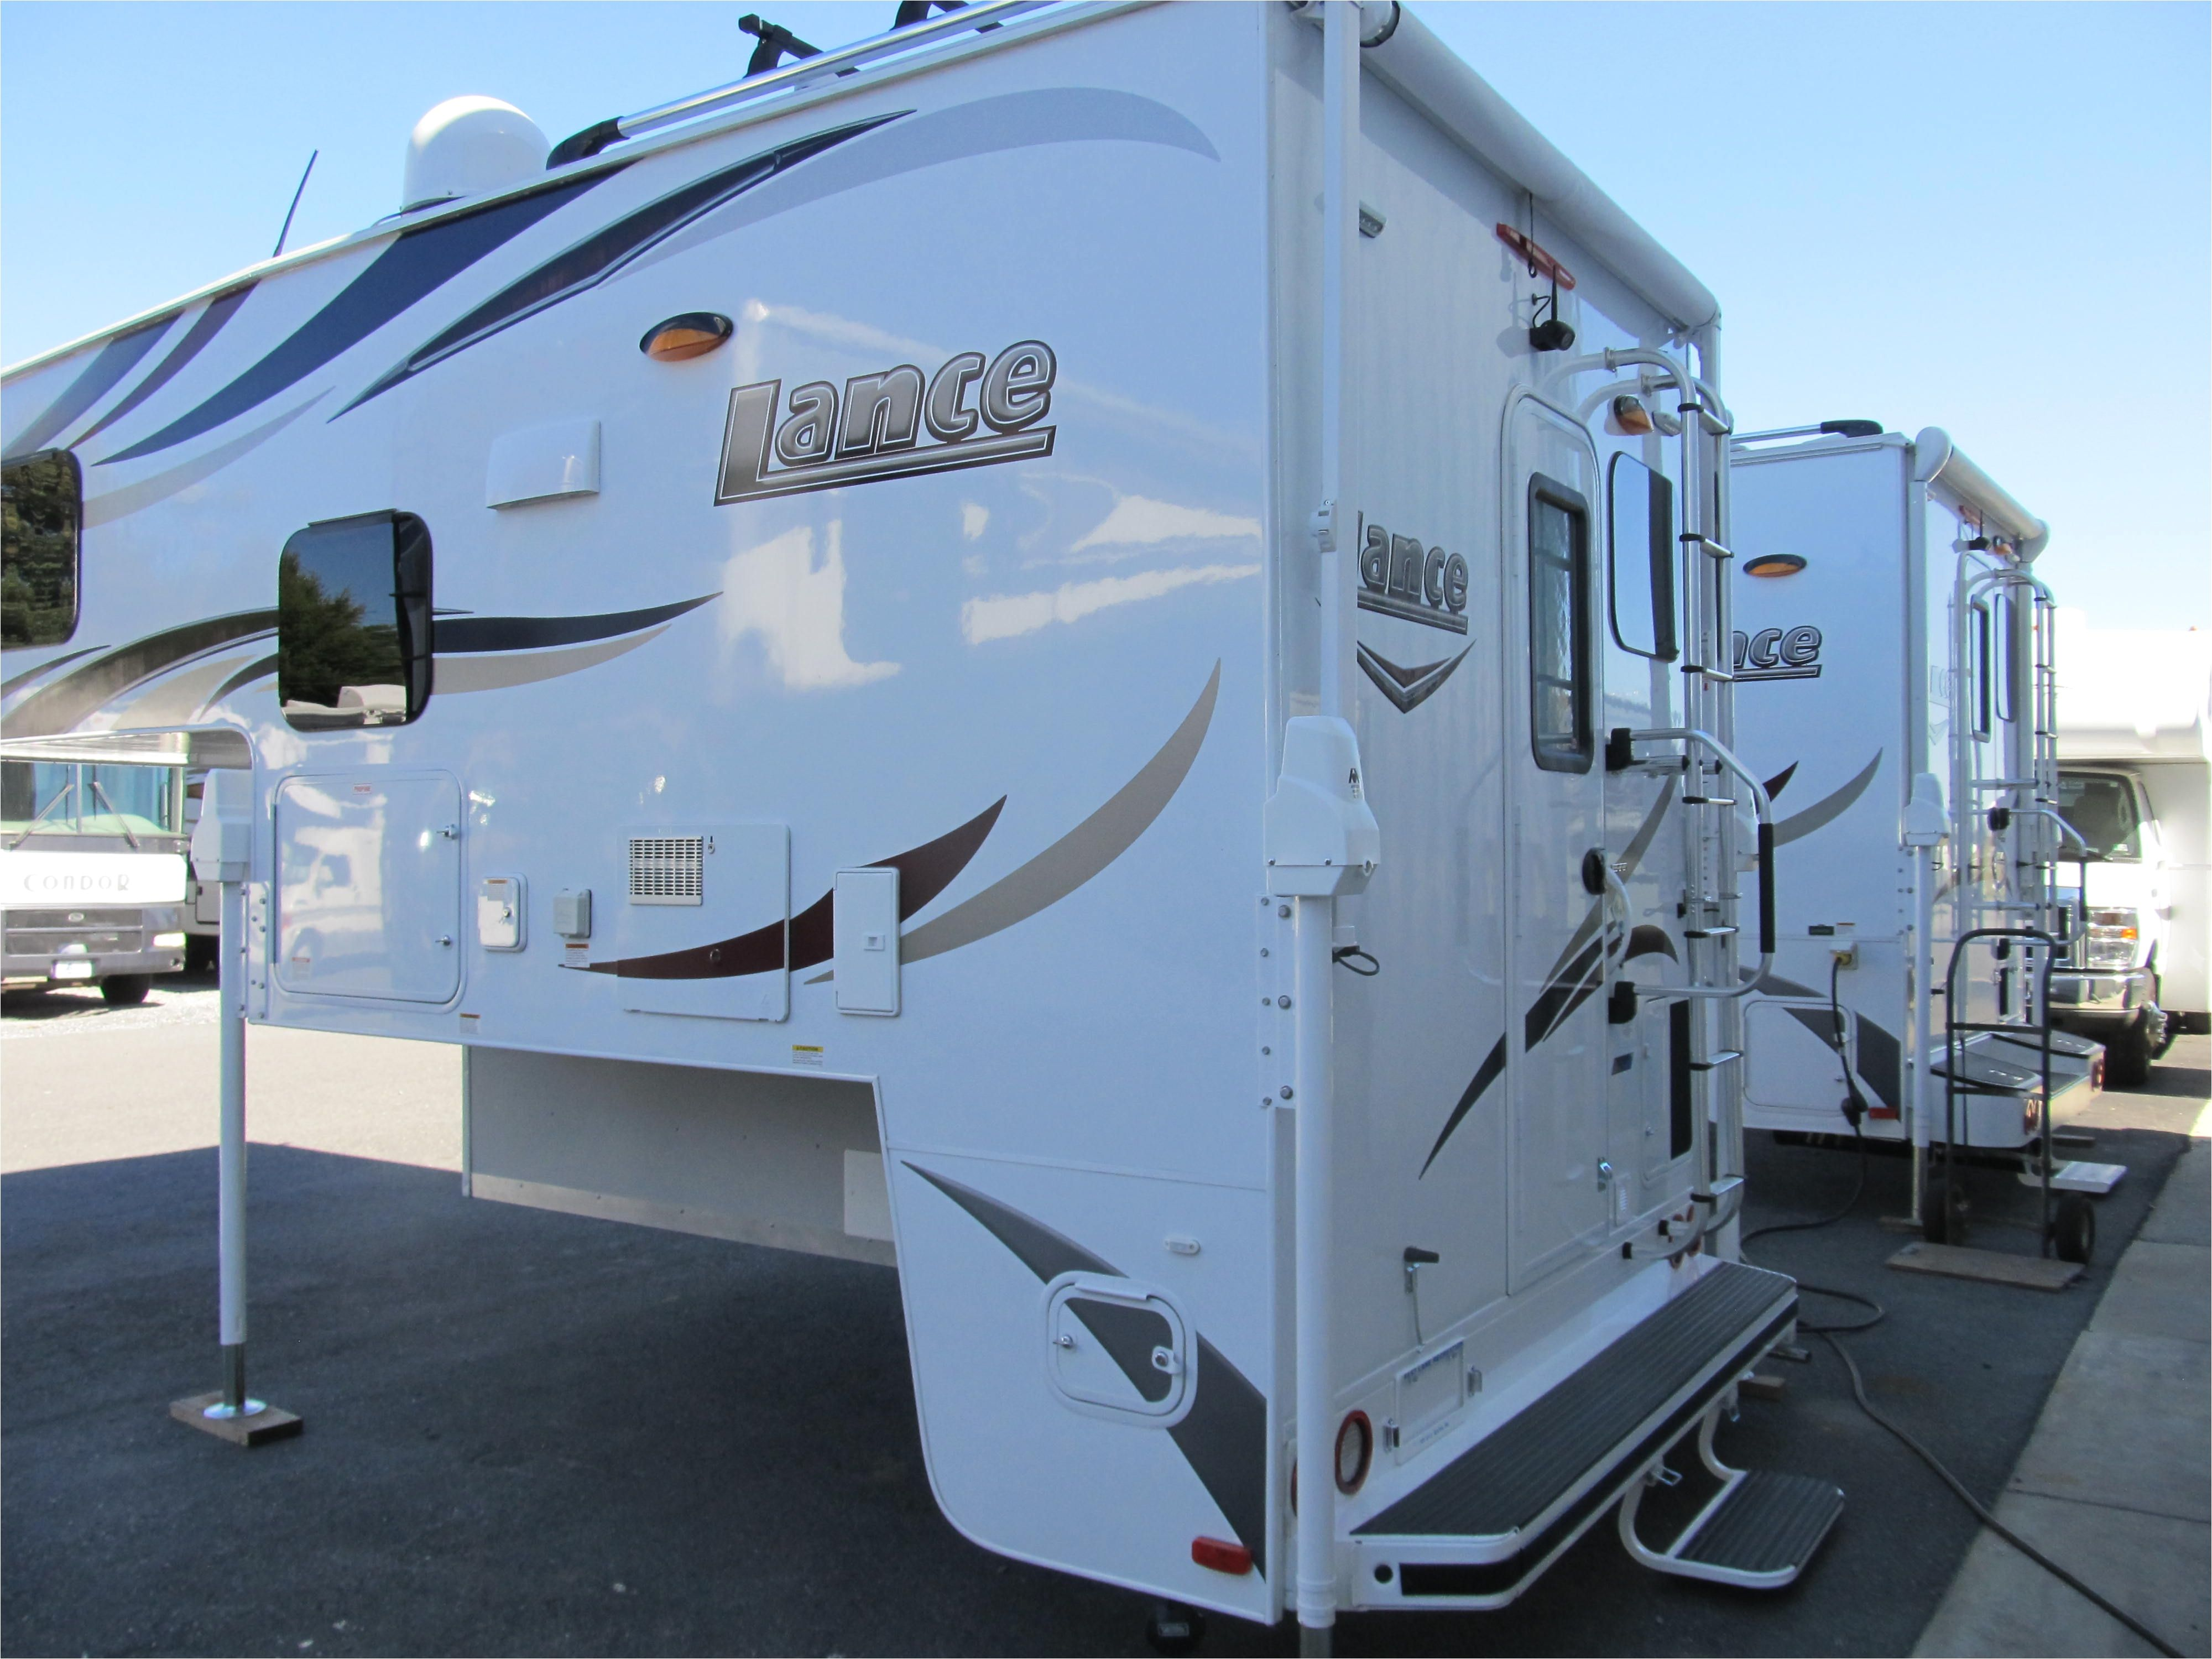 2 bedroom campers for sale in pa  campers for sale